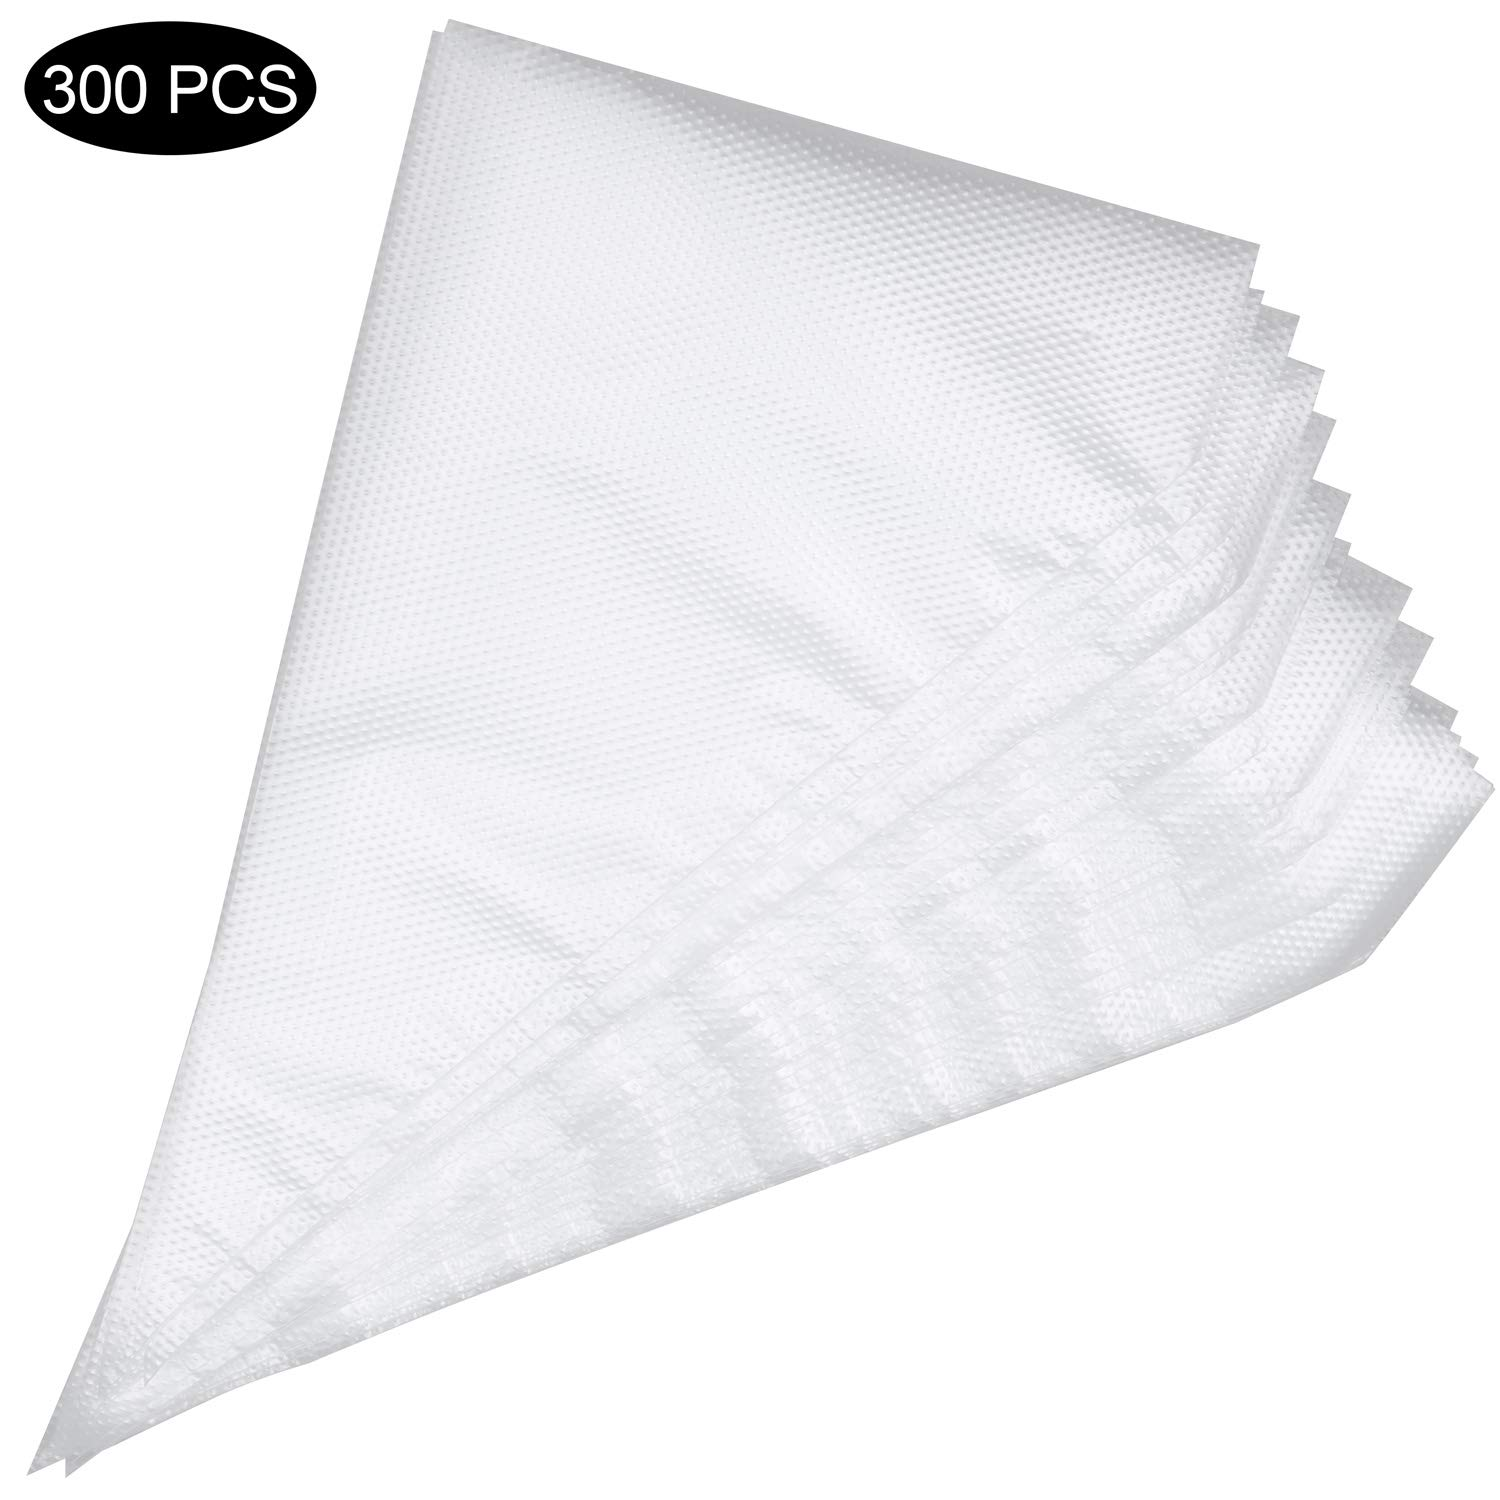 300 Pieces Disposable Pastry Piping Bags, 13 inch Disposable Cake Decorating Bag Cupcake Icing Bags for Baking Cupcakes Cookies Candy Decorating Supplies Tool